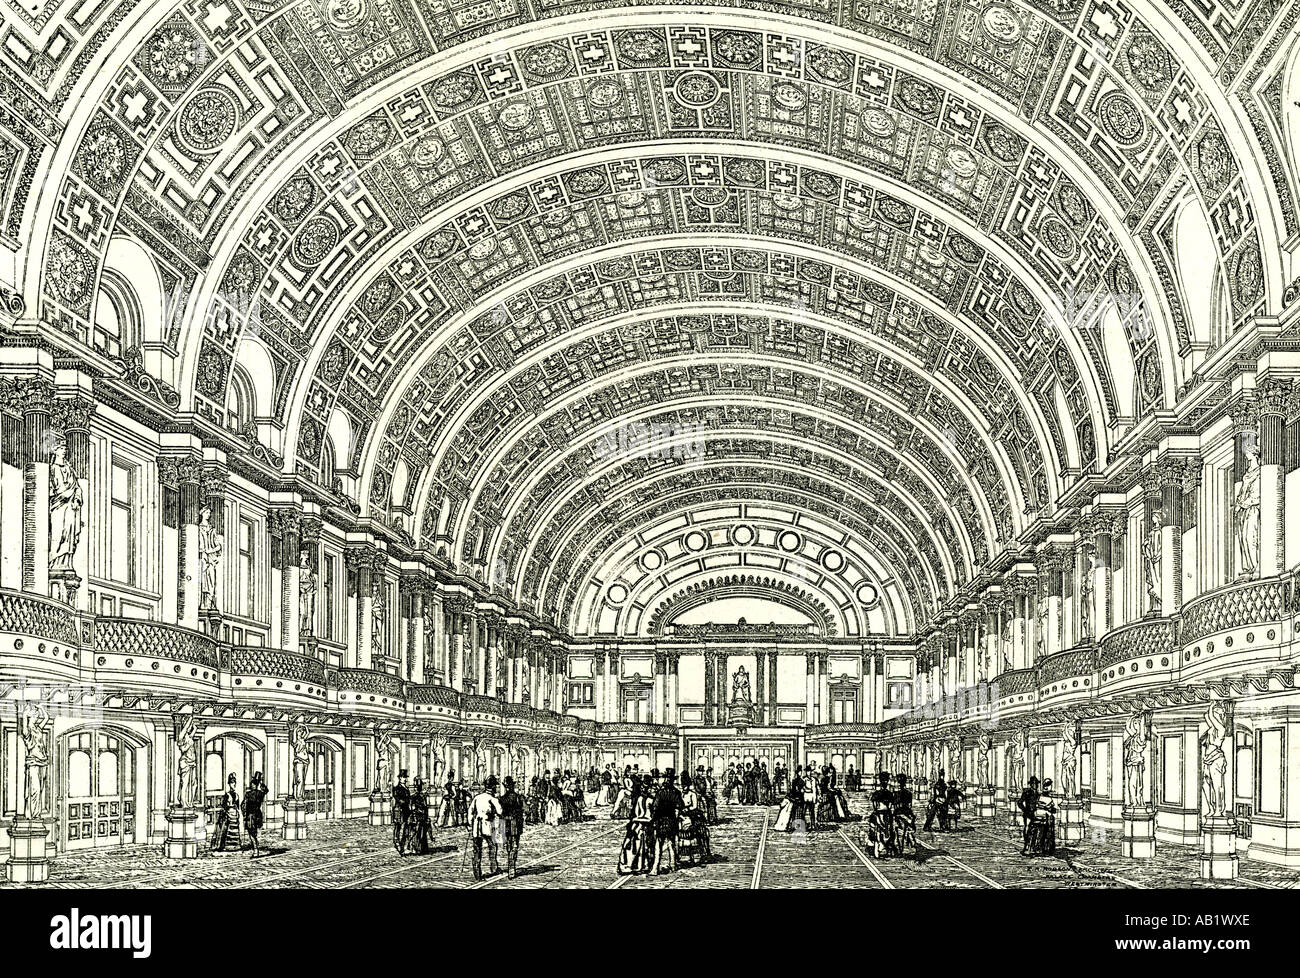 Les gens s Palace Londres U K 1887 La Reine s hall ouvre par Sa Majesté Londres Photo Stock